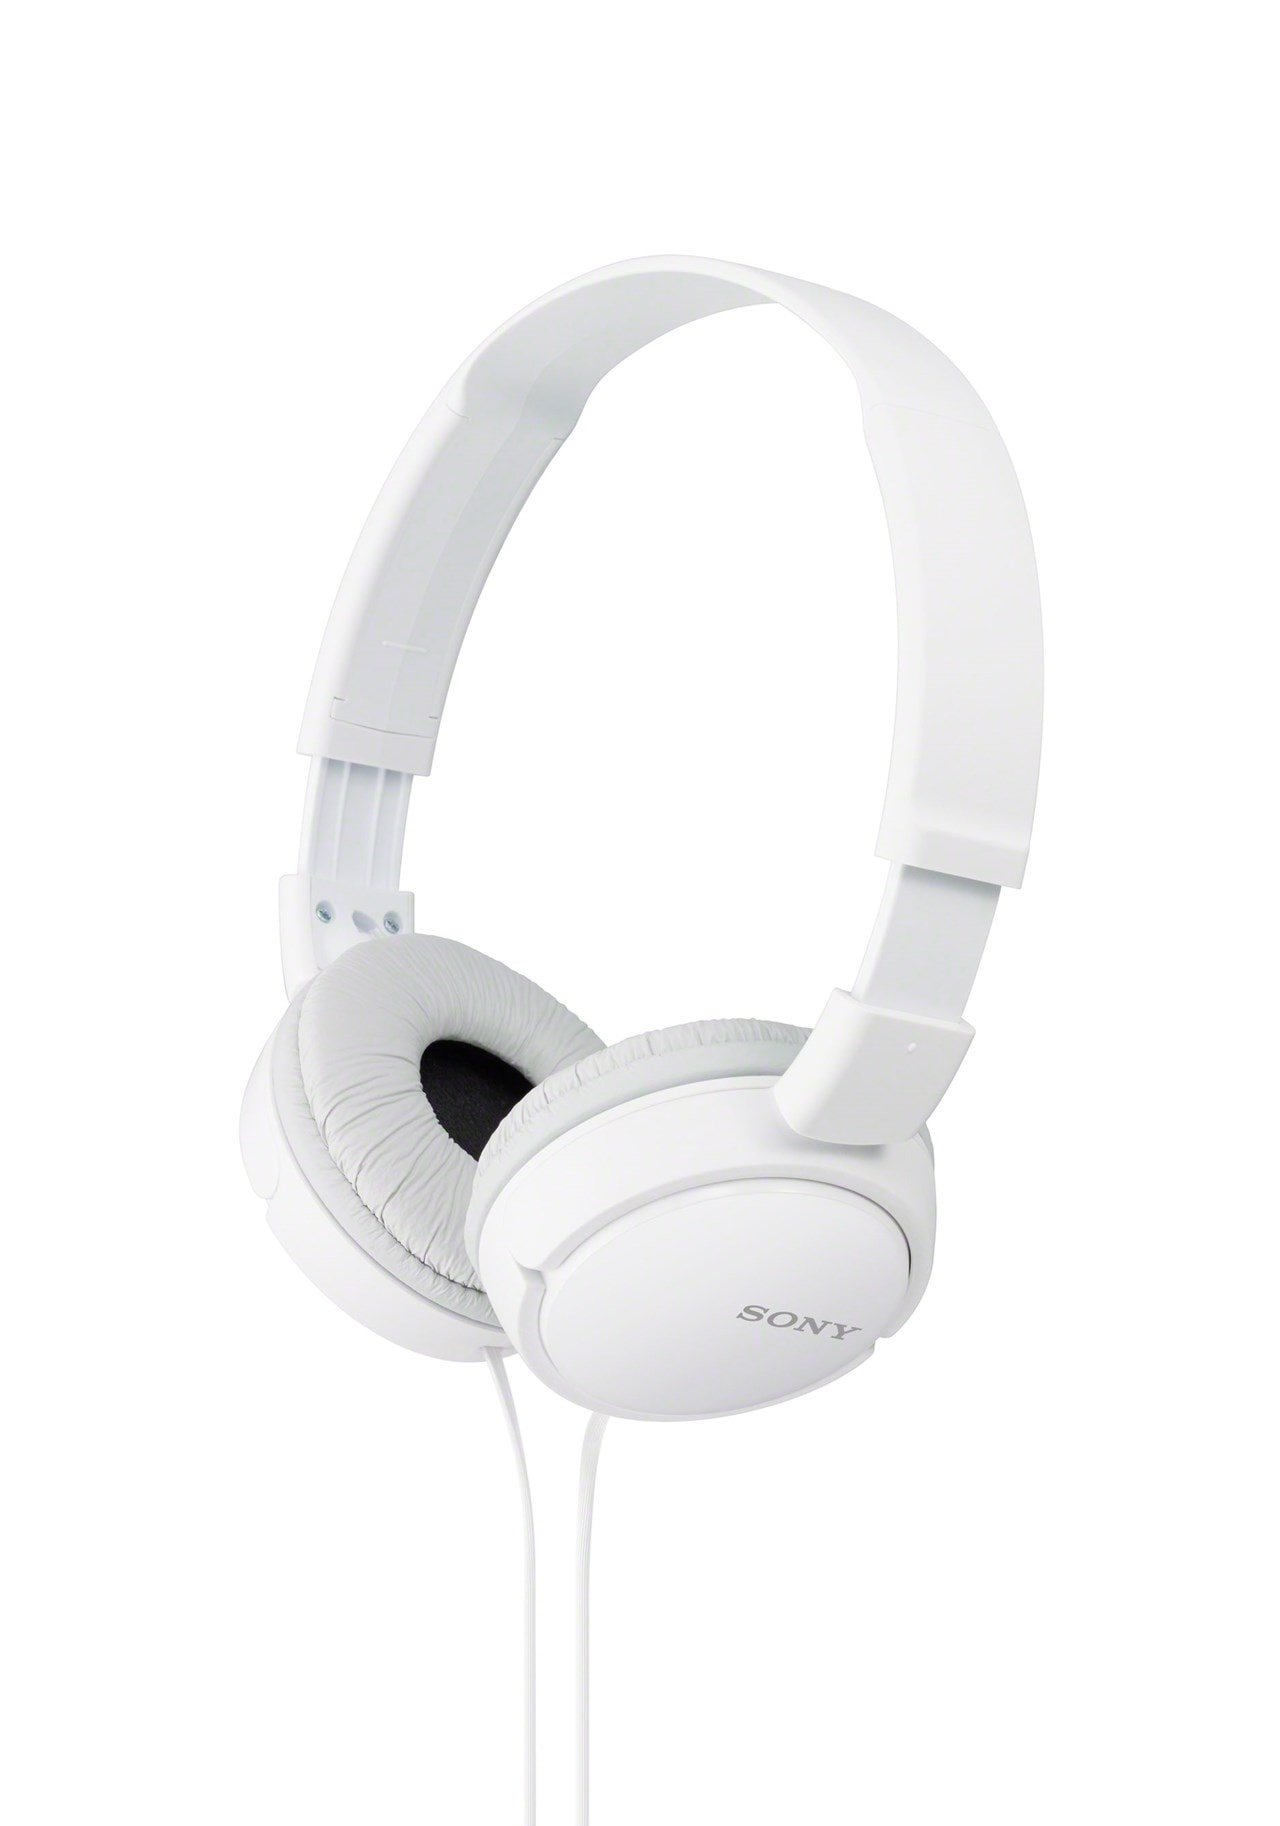 Sony MDRZX110 White Headphones - 1